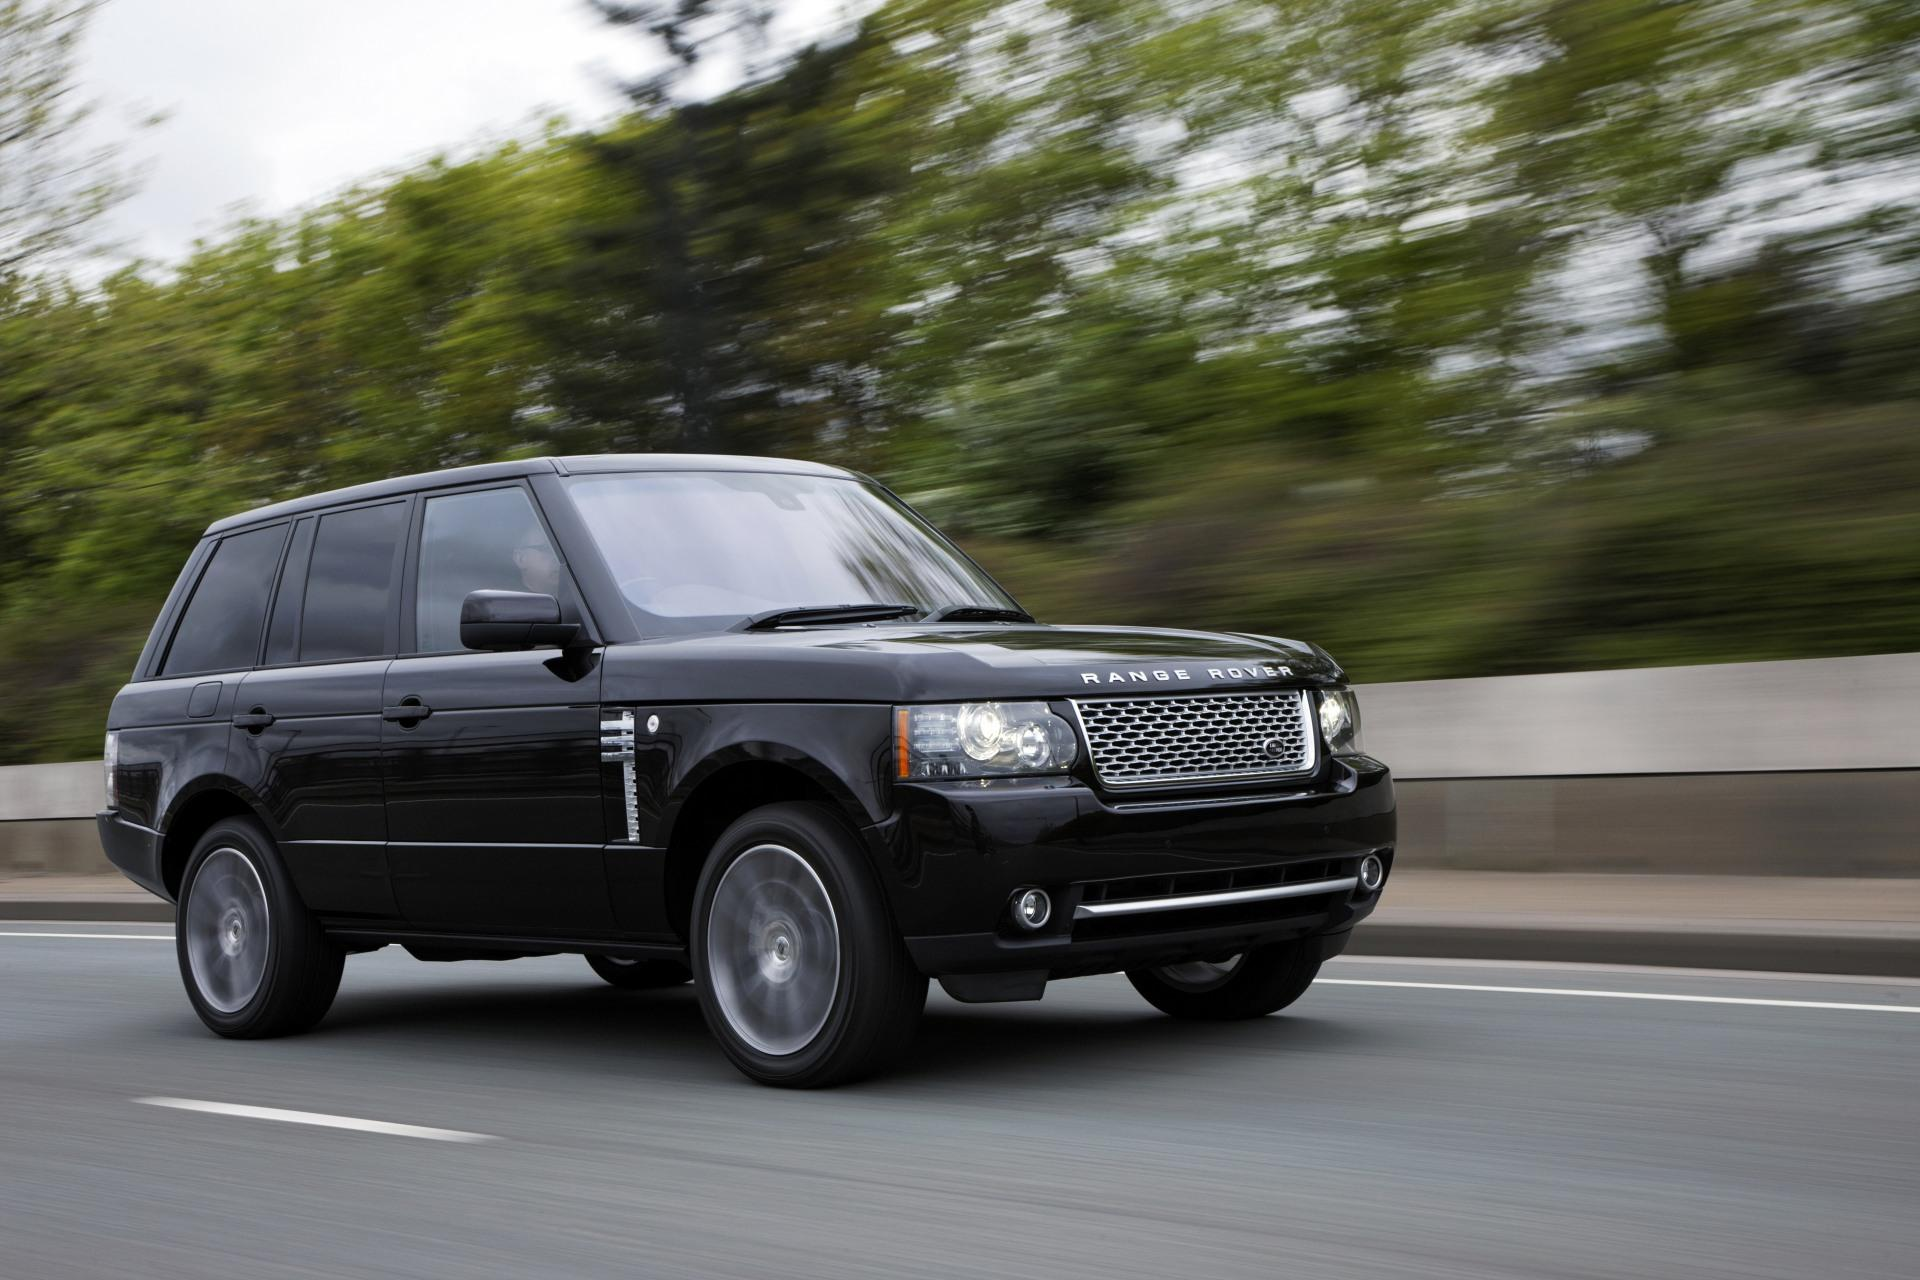 2011 land rover range rover autobiography black edition. Black Bedroom Furniture Sets. Home Design Ideas